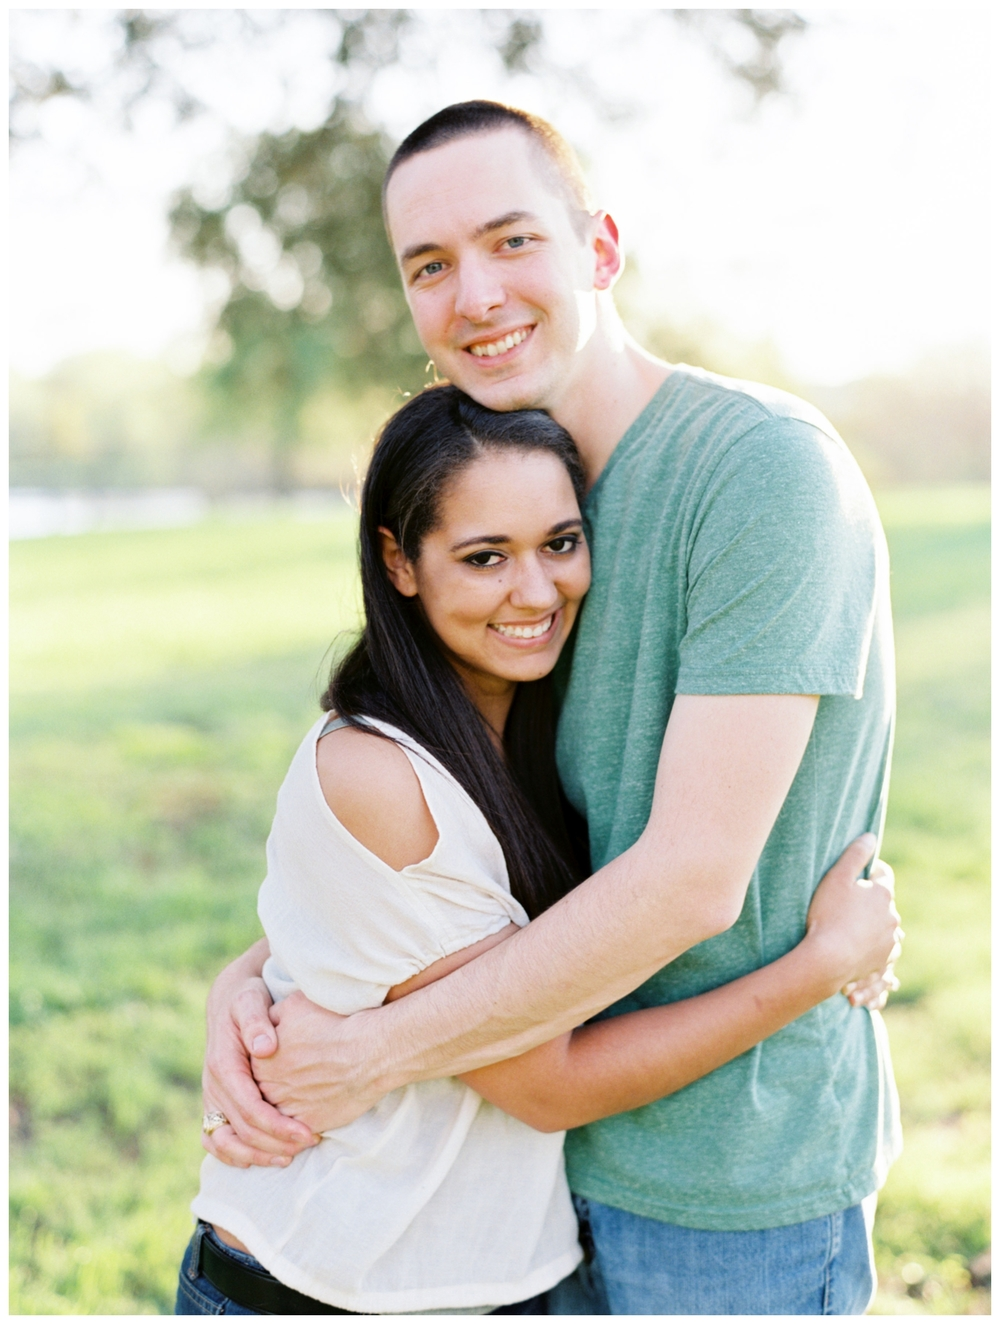 Nyssa & JD Engagements - Rock Lake Ranch - College Station Tx - Film-25_STP.jpg